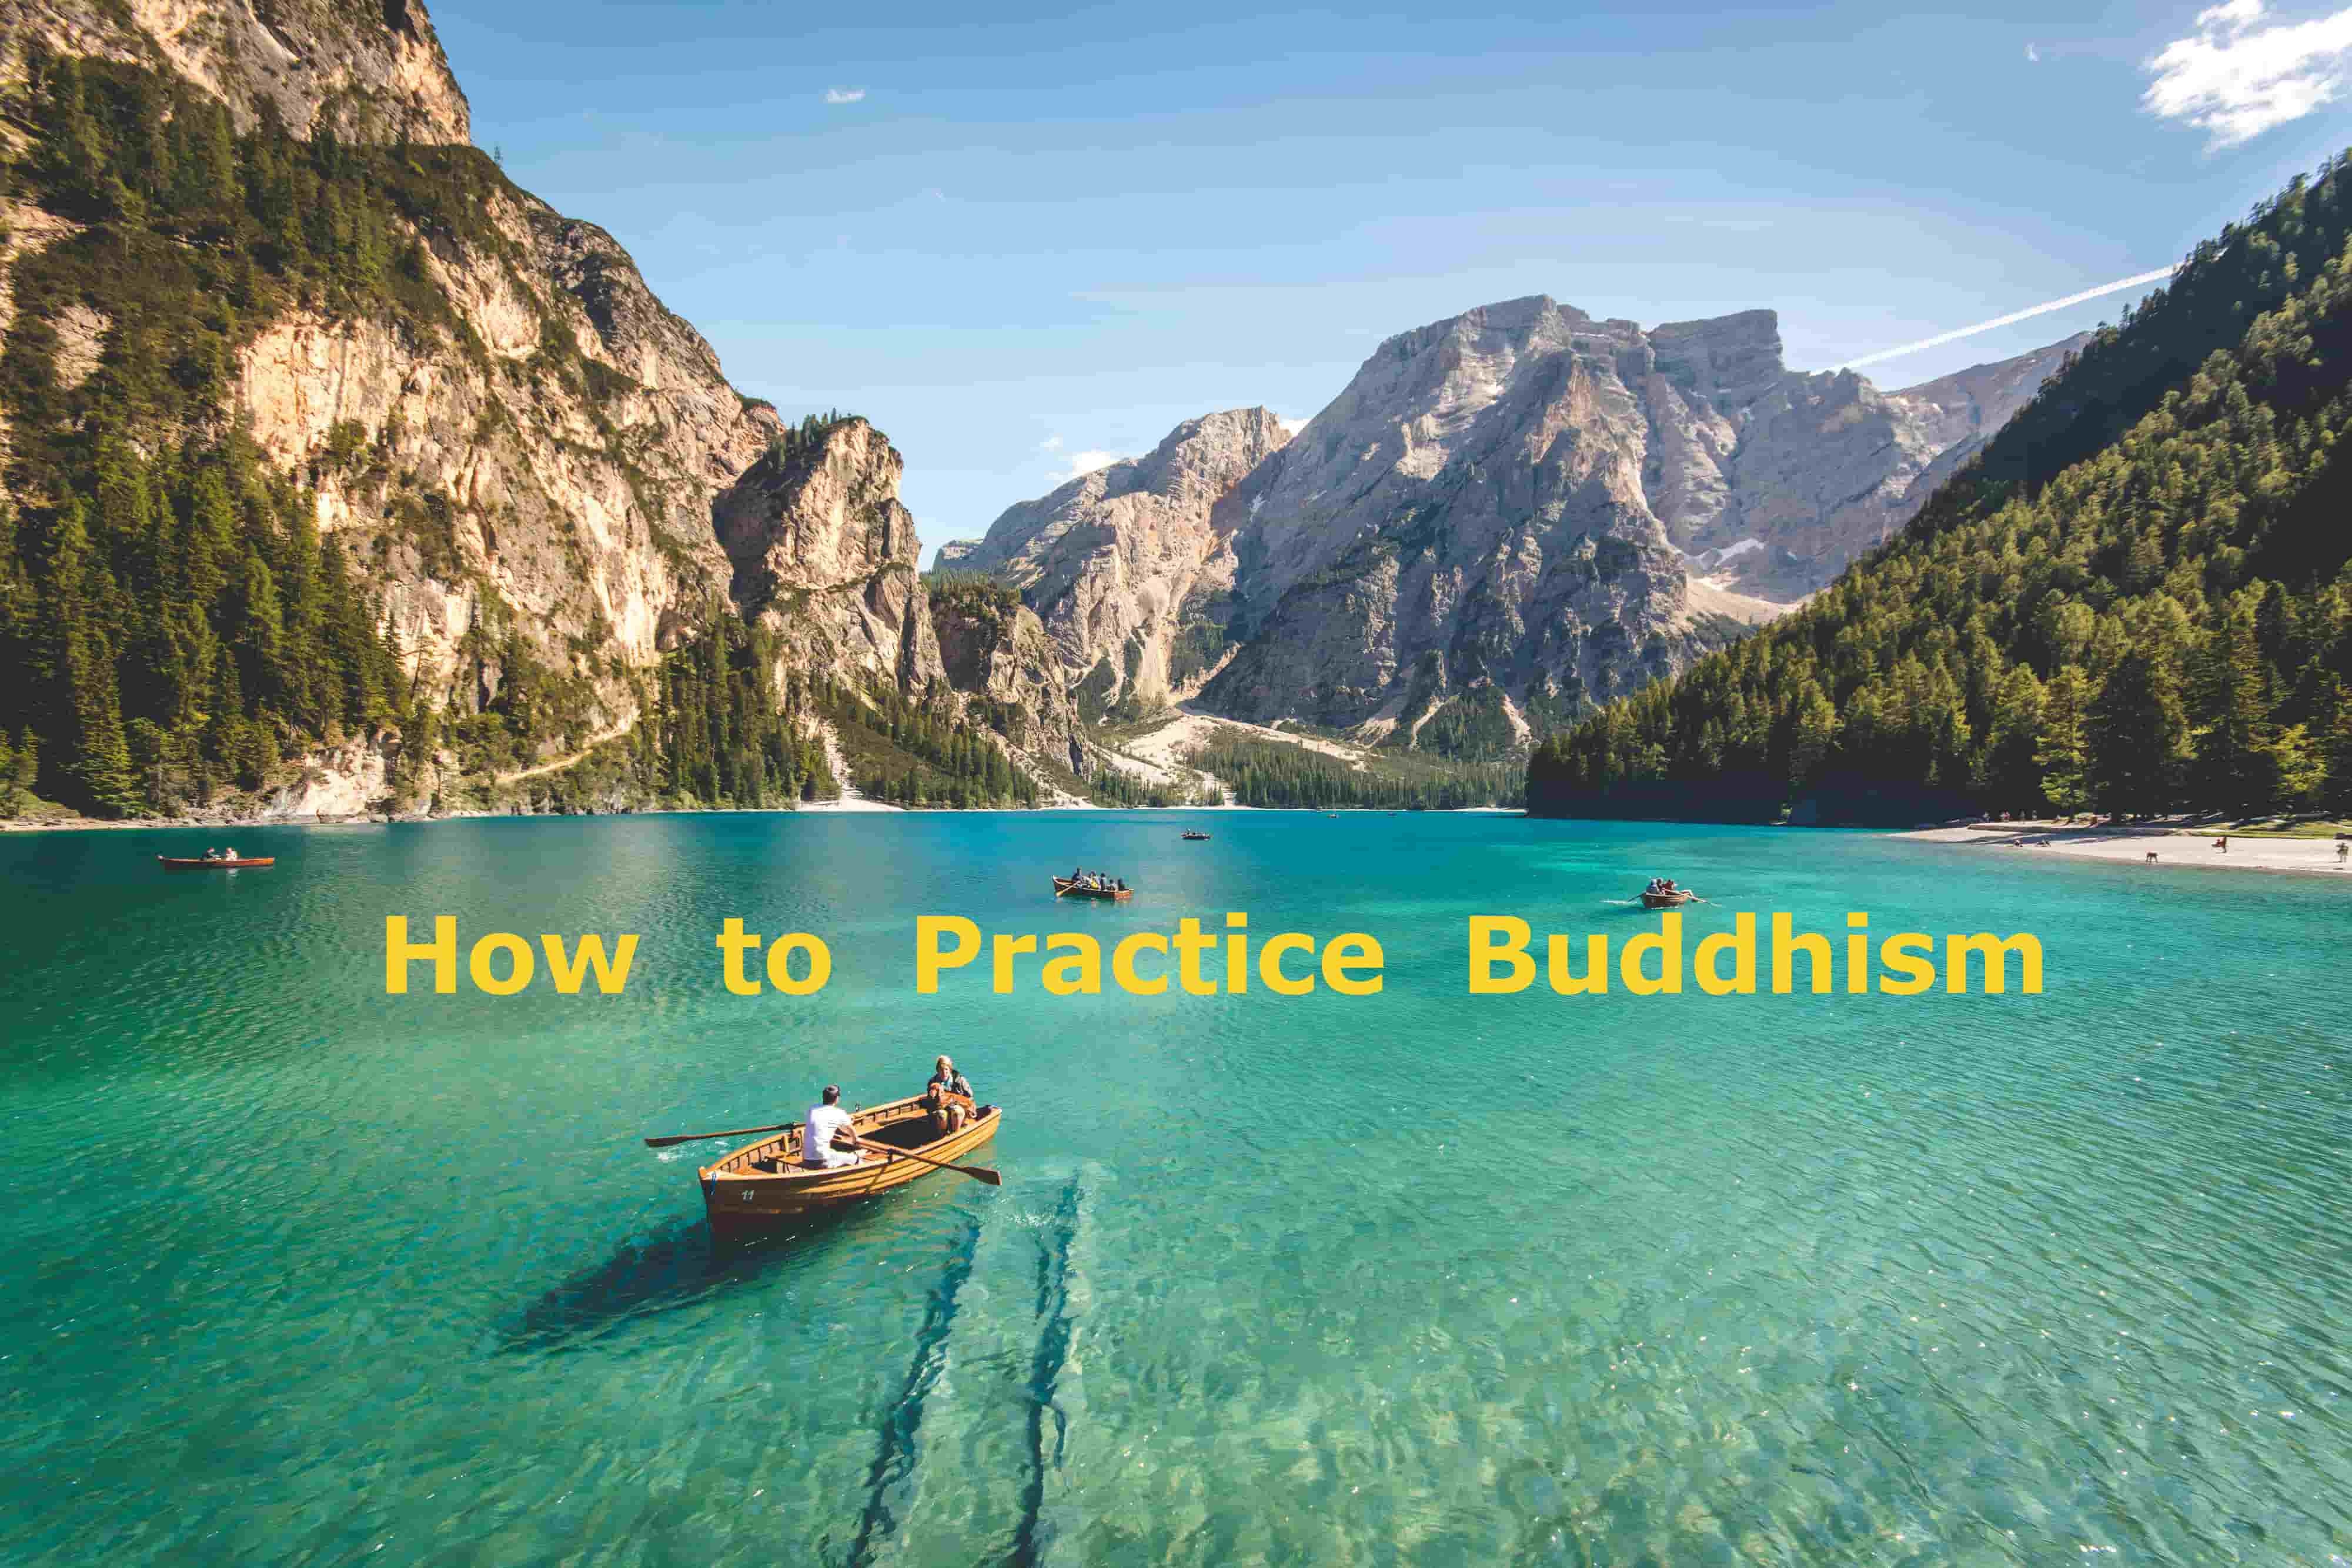 How to Practice Buddhism